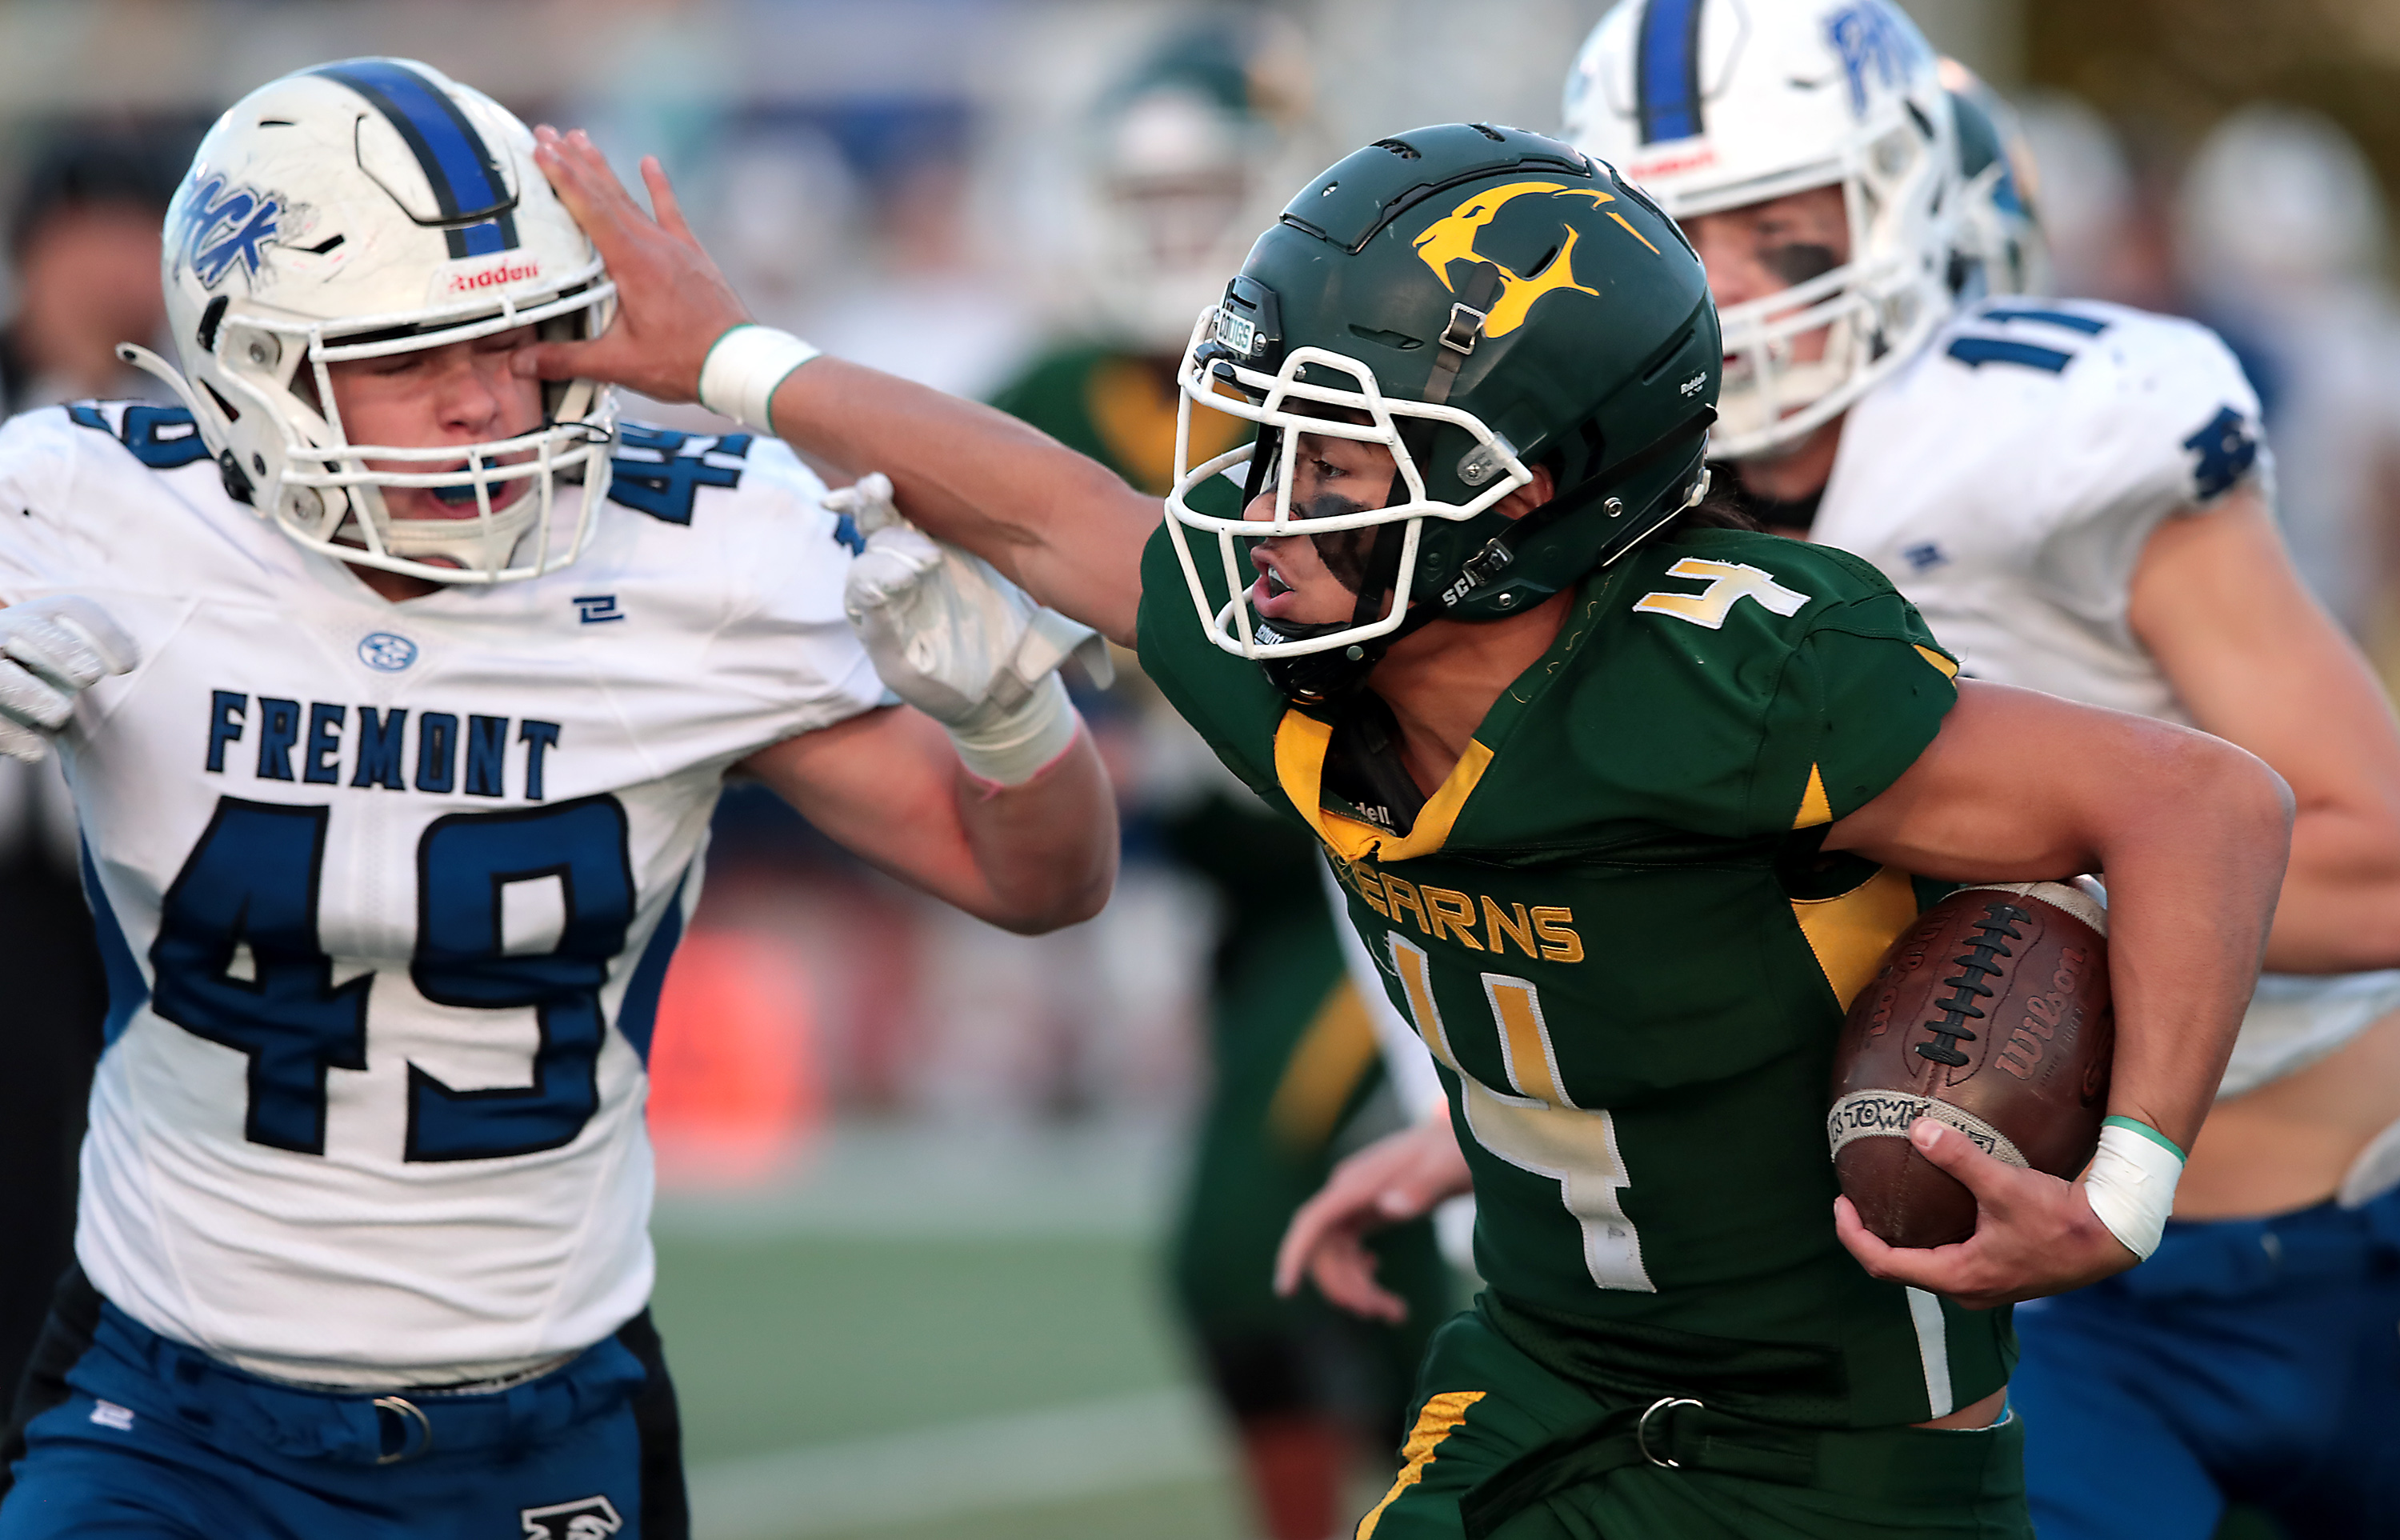 Kearns' quarterback Iosefa Toia'ivao stiff-arms Fremont's Brant Koford on a run during a 6A state playoff game at Kearns on Friday, Oct. 22, 2021. Kearns won 31-30 in overtime.